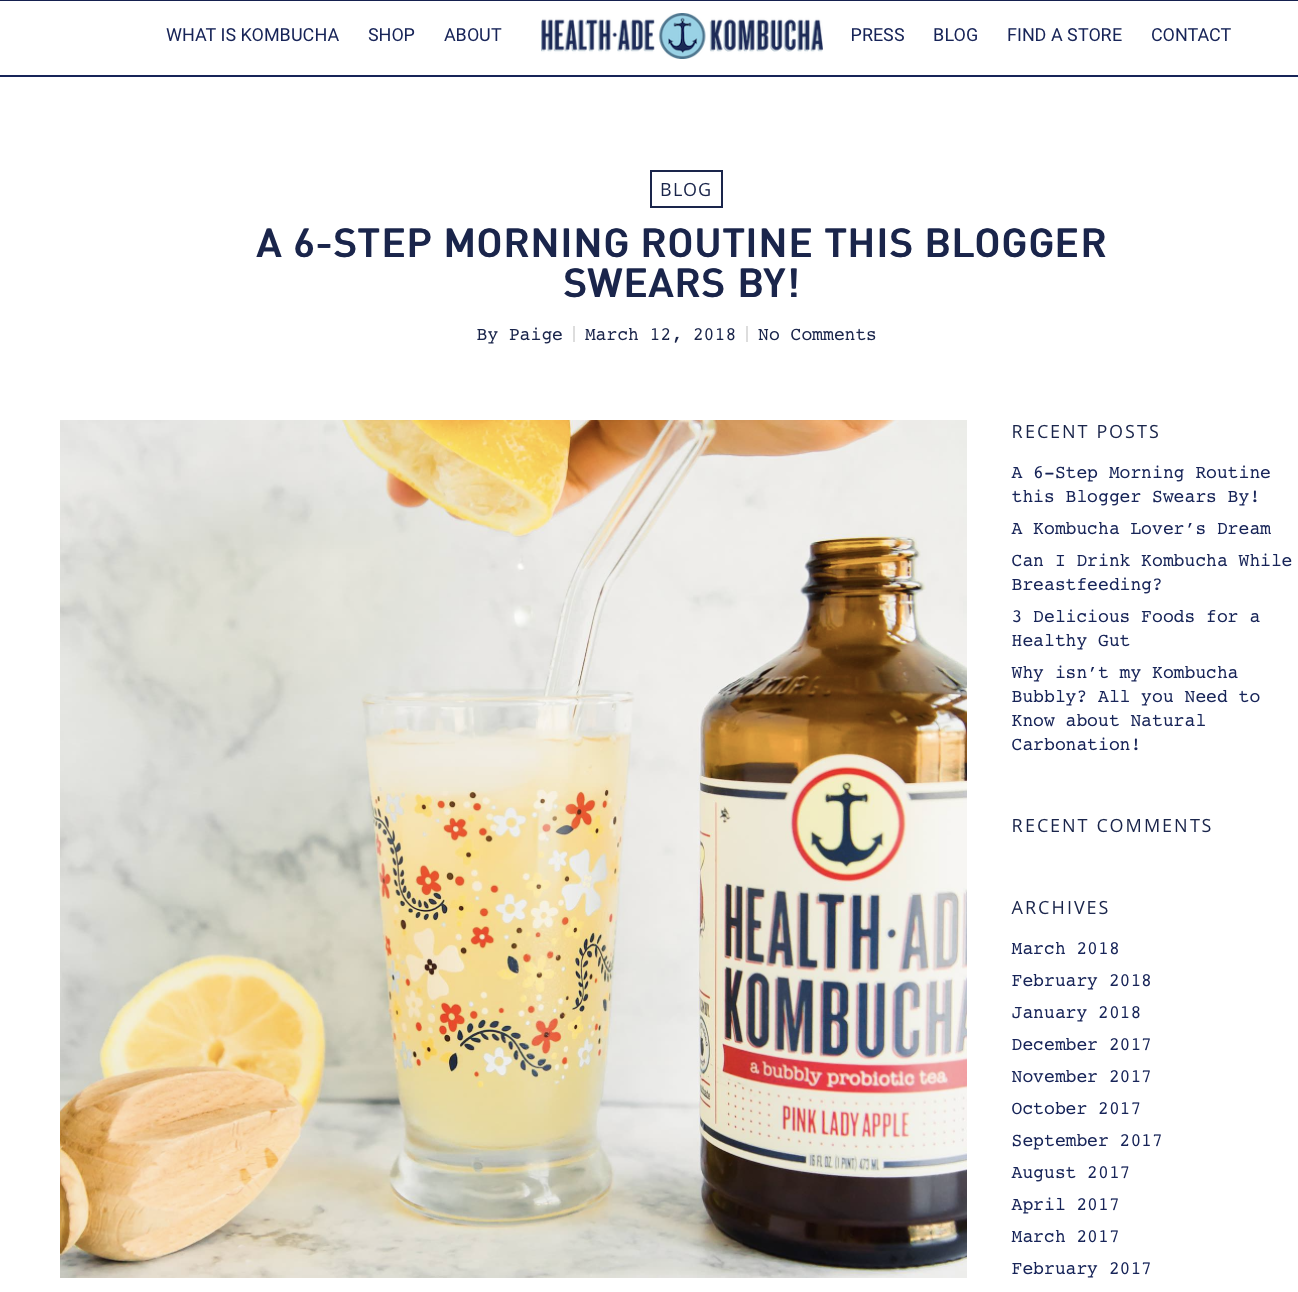 Health-Ade Kombucha & Front Paige - I am proud to announce I am a part of the 2018 Health-Ade Kombucha Bubbly Gang! Check in every month for a new blog post by me!